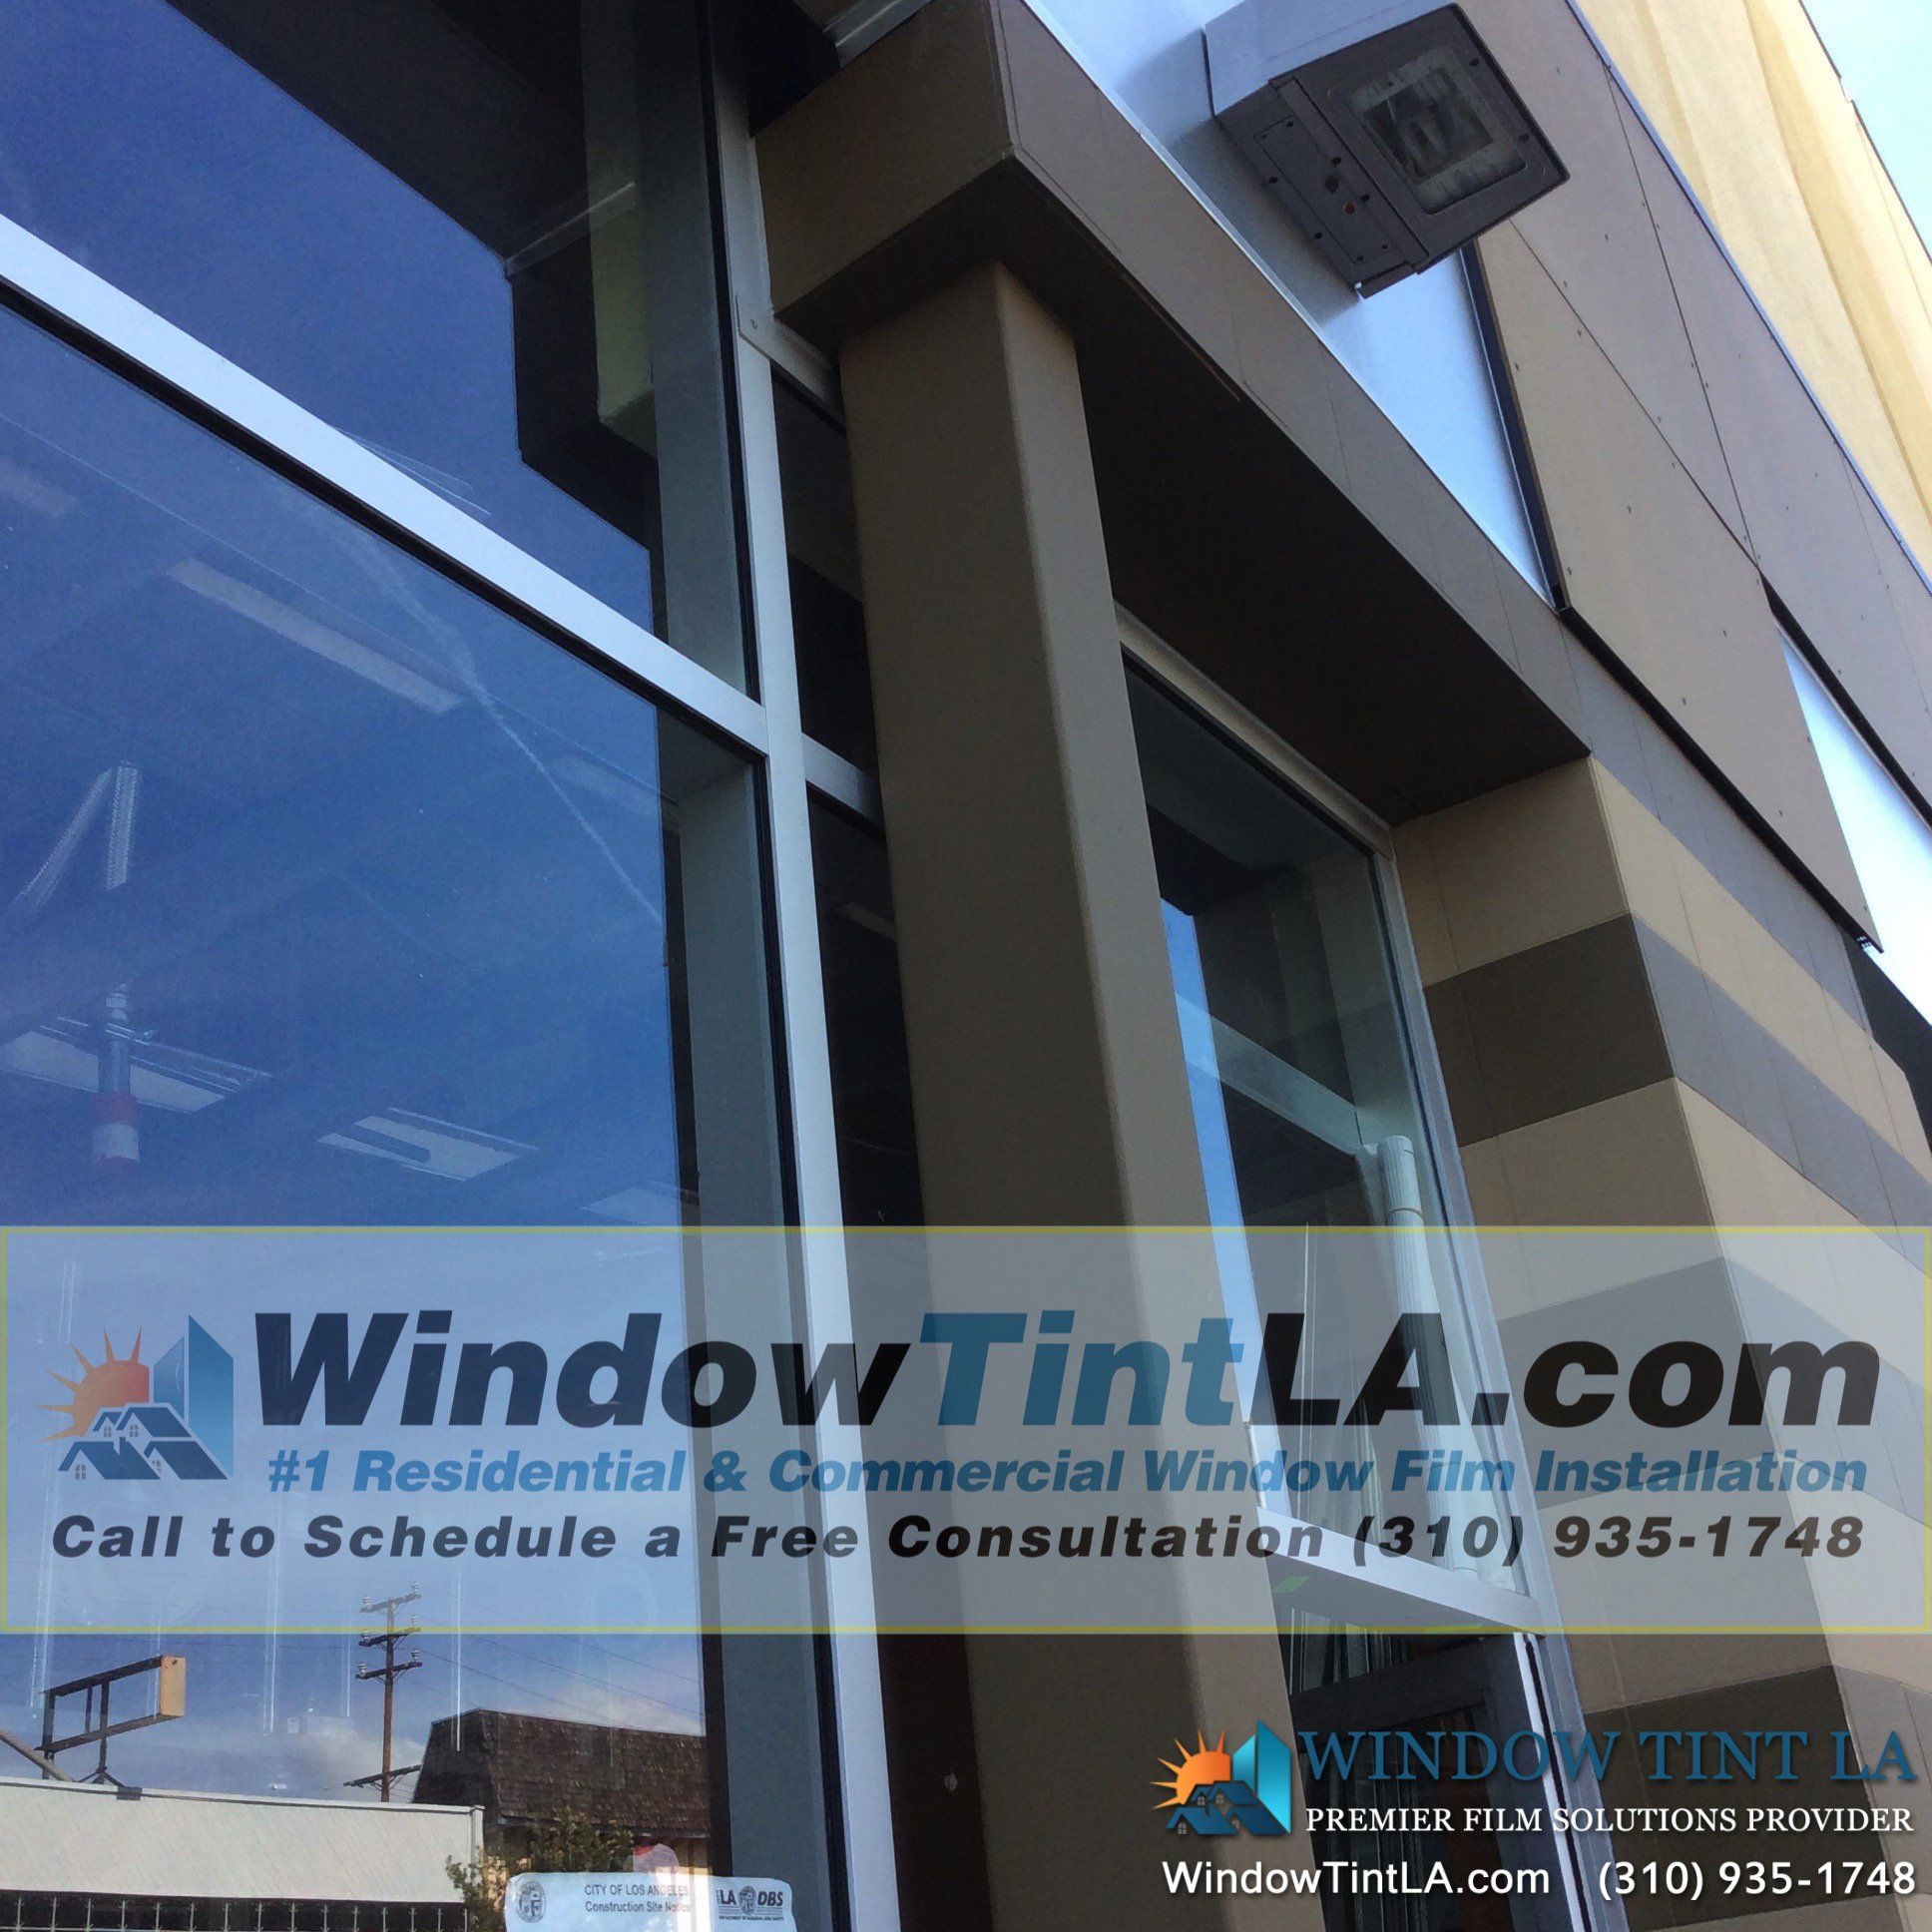 Blackout Window Film Is The Best Way To Darken A Room The Low Cost